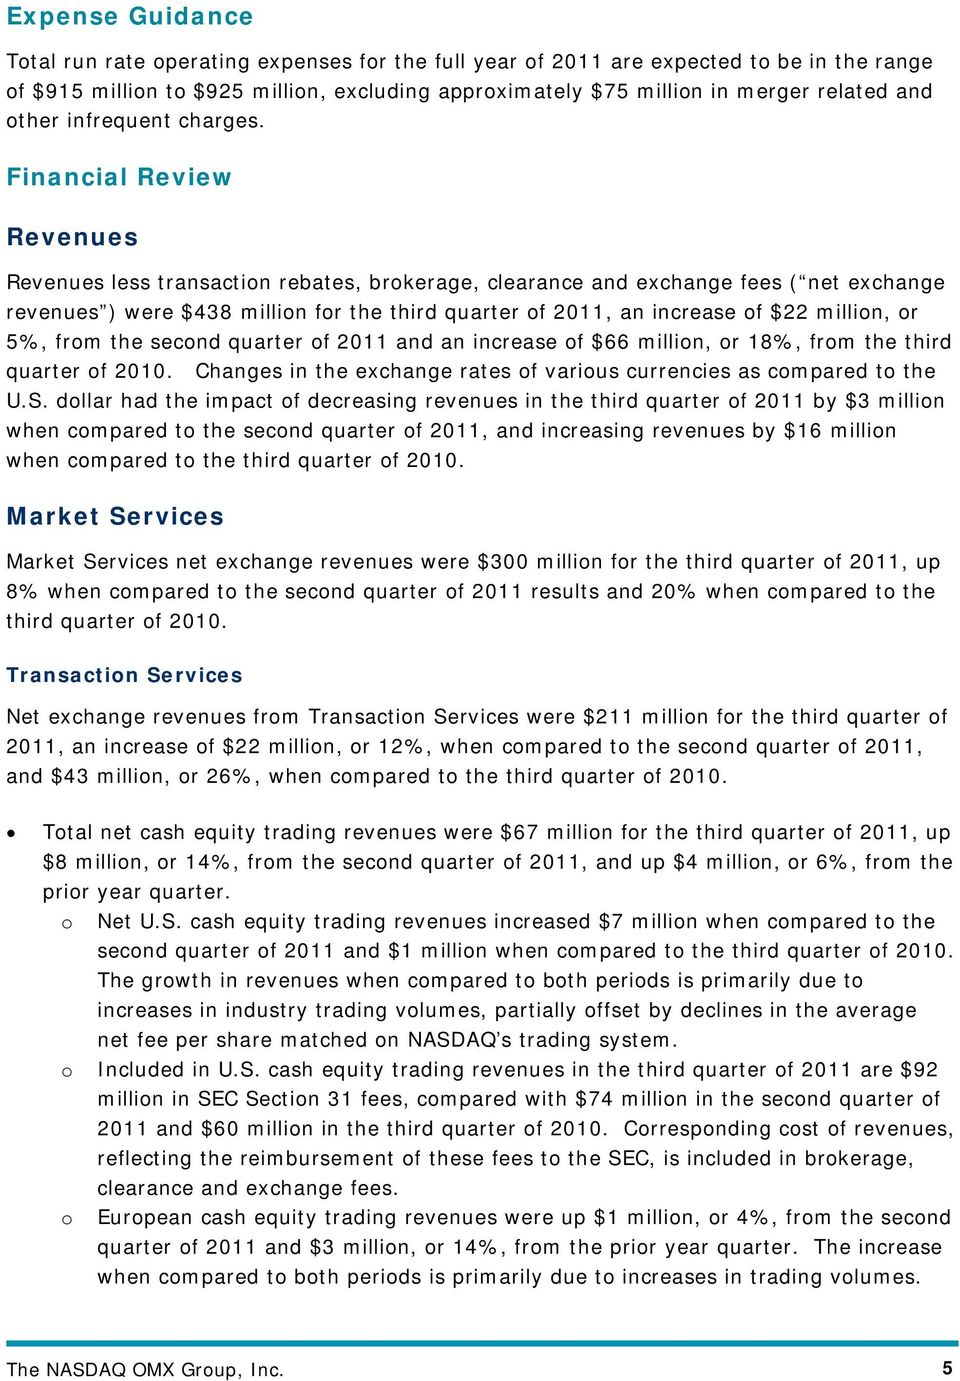 Financial Review Revenues Revenues less transaction rebates, brokerage, clearance and exchange fees ( net exchange revenues ) were $438 million for the third quarter of 2011, an increase of $22